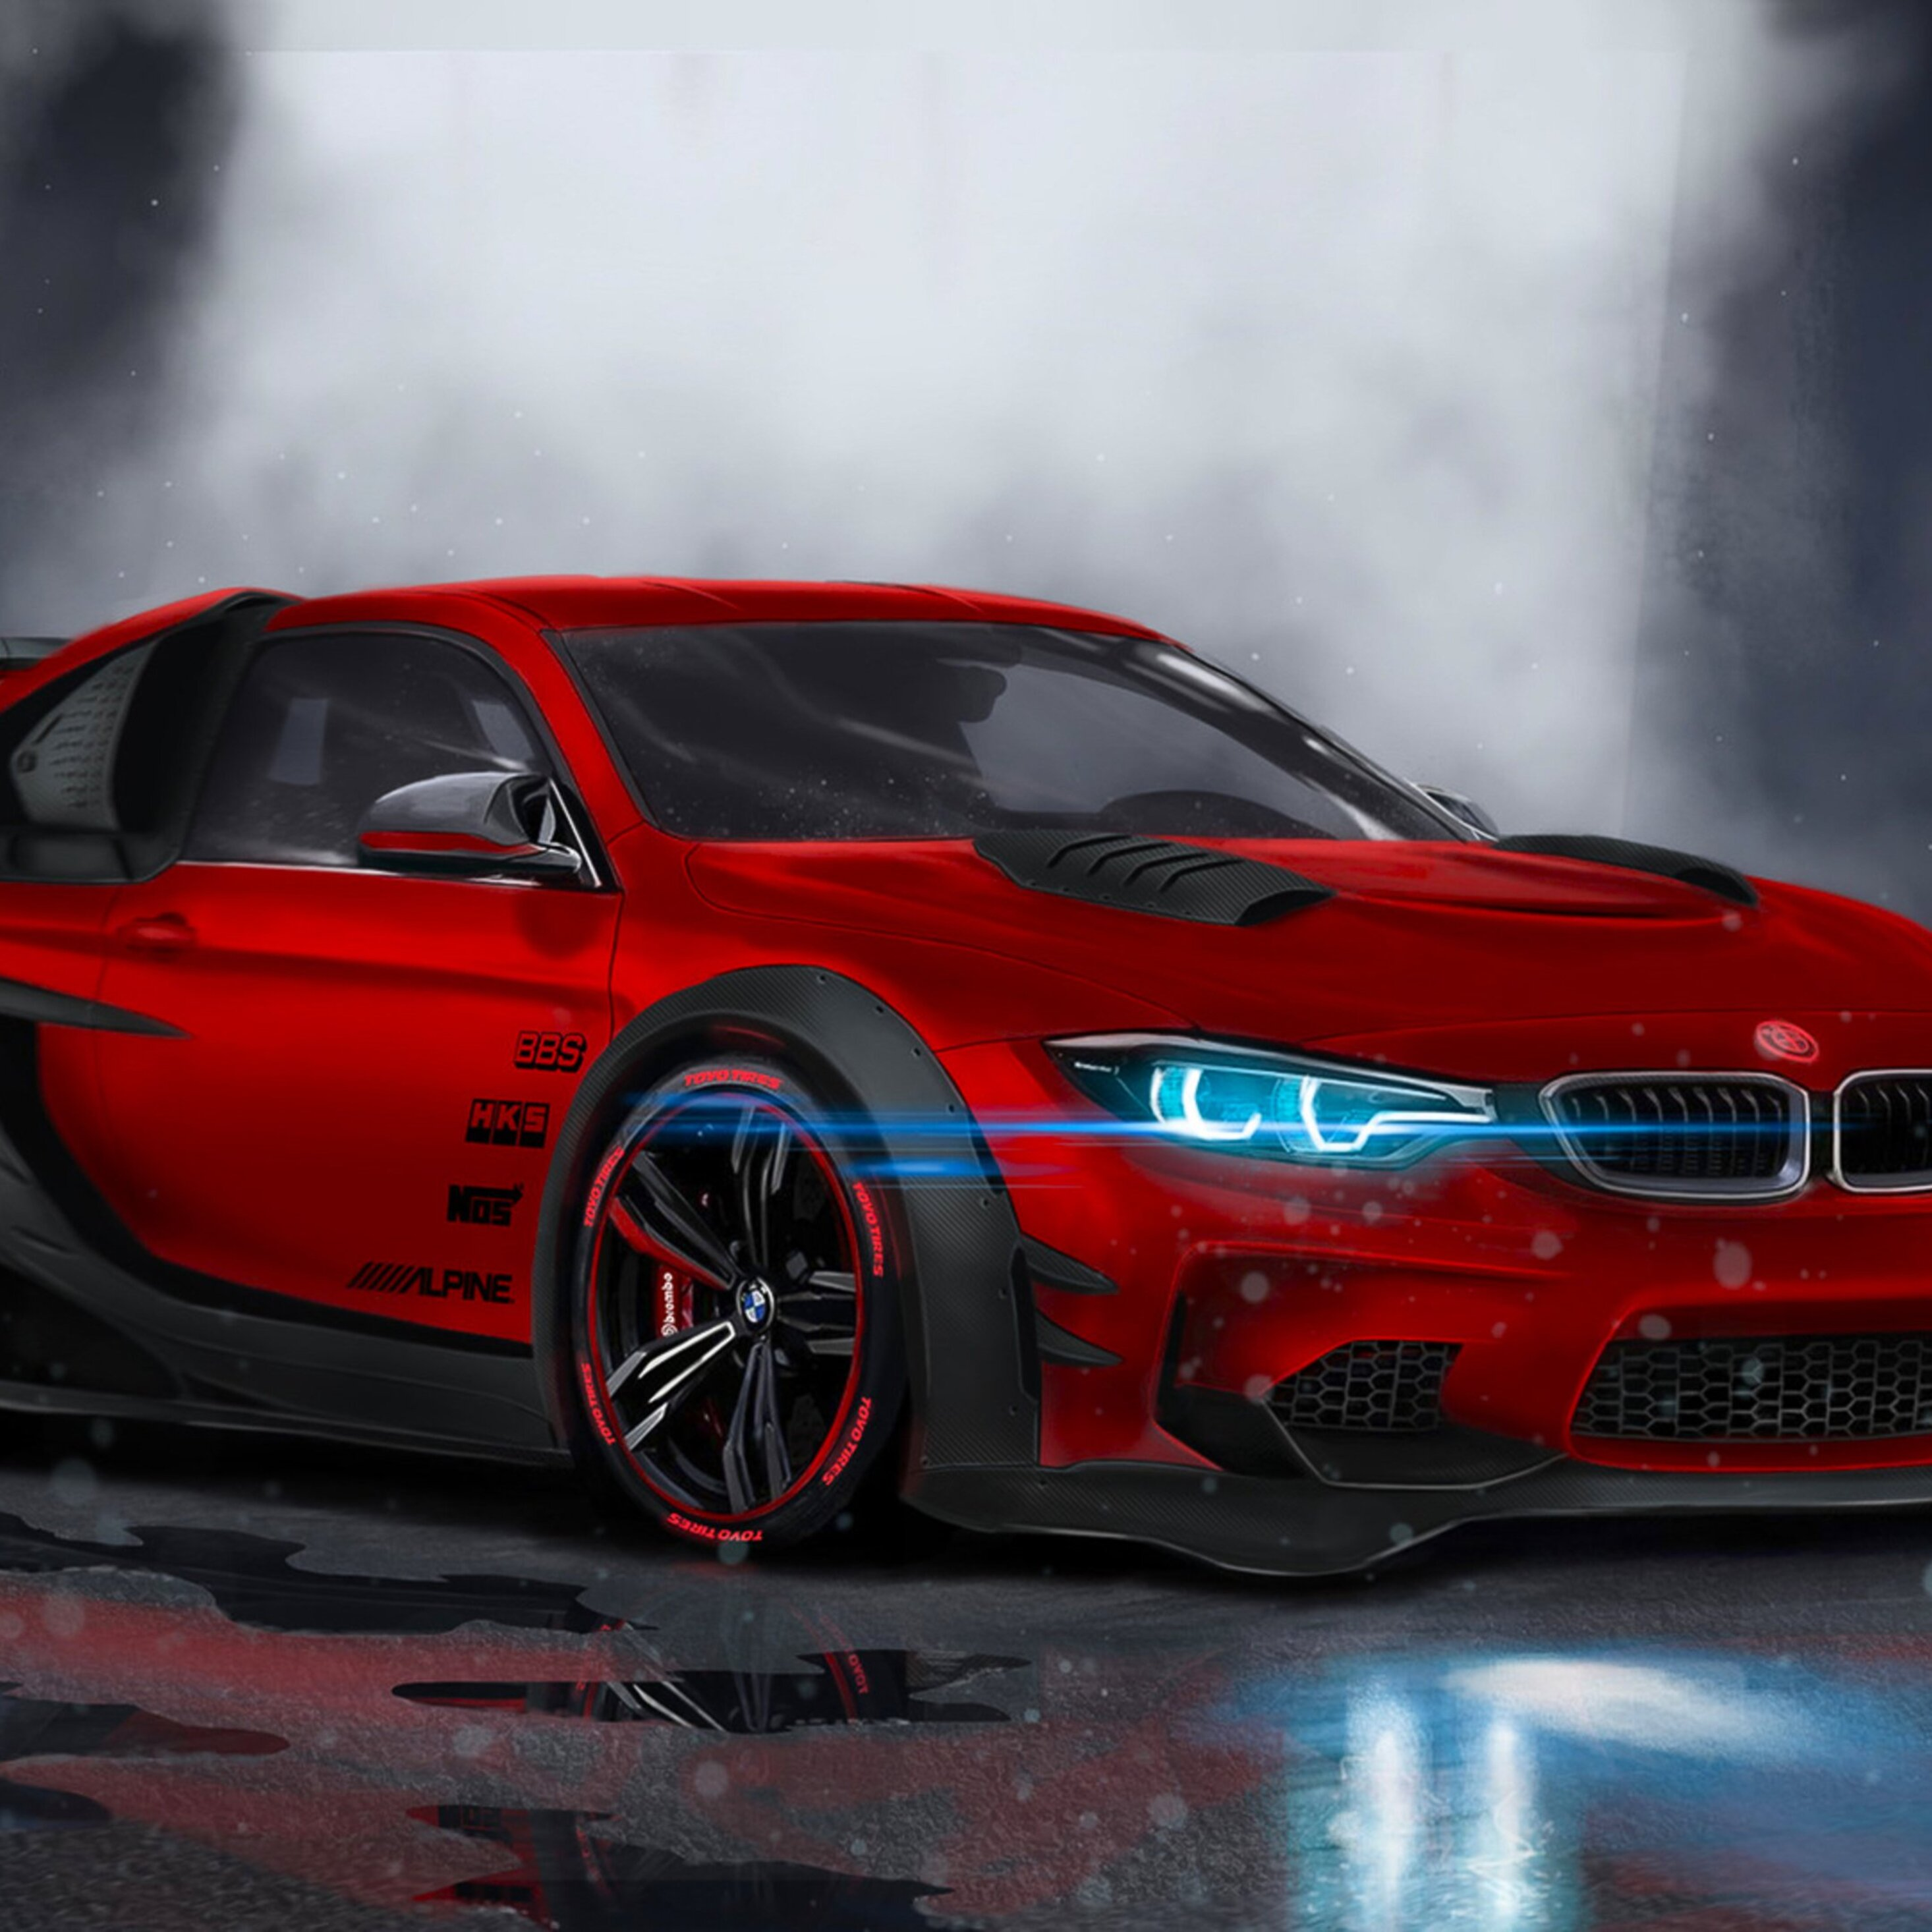 bmw-m4-highly-modified.jpg